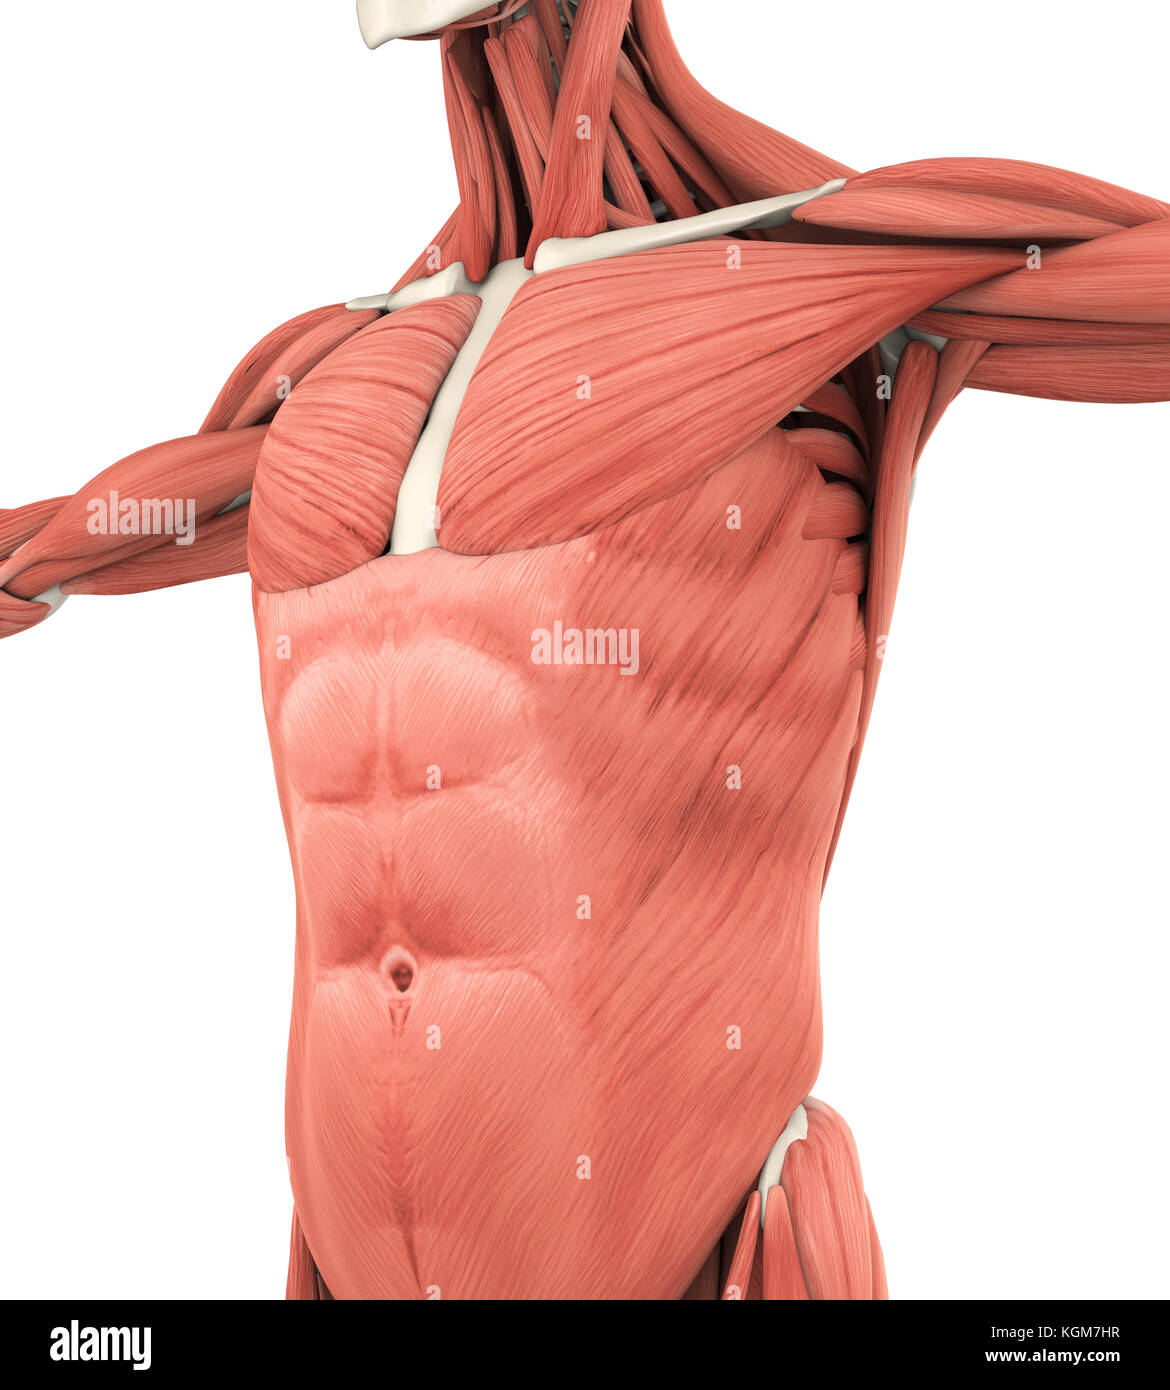 Upper Body Anatomy Stock Photos & Upper Body Anatomy Stock Images ...